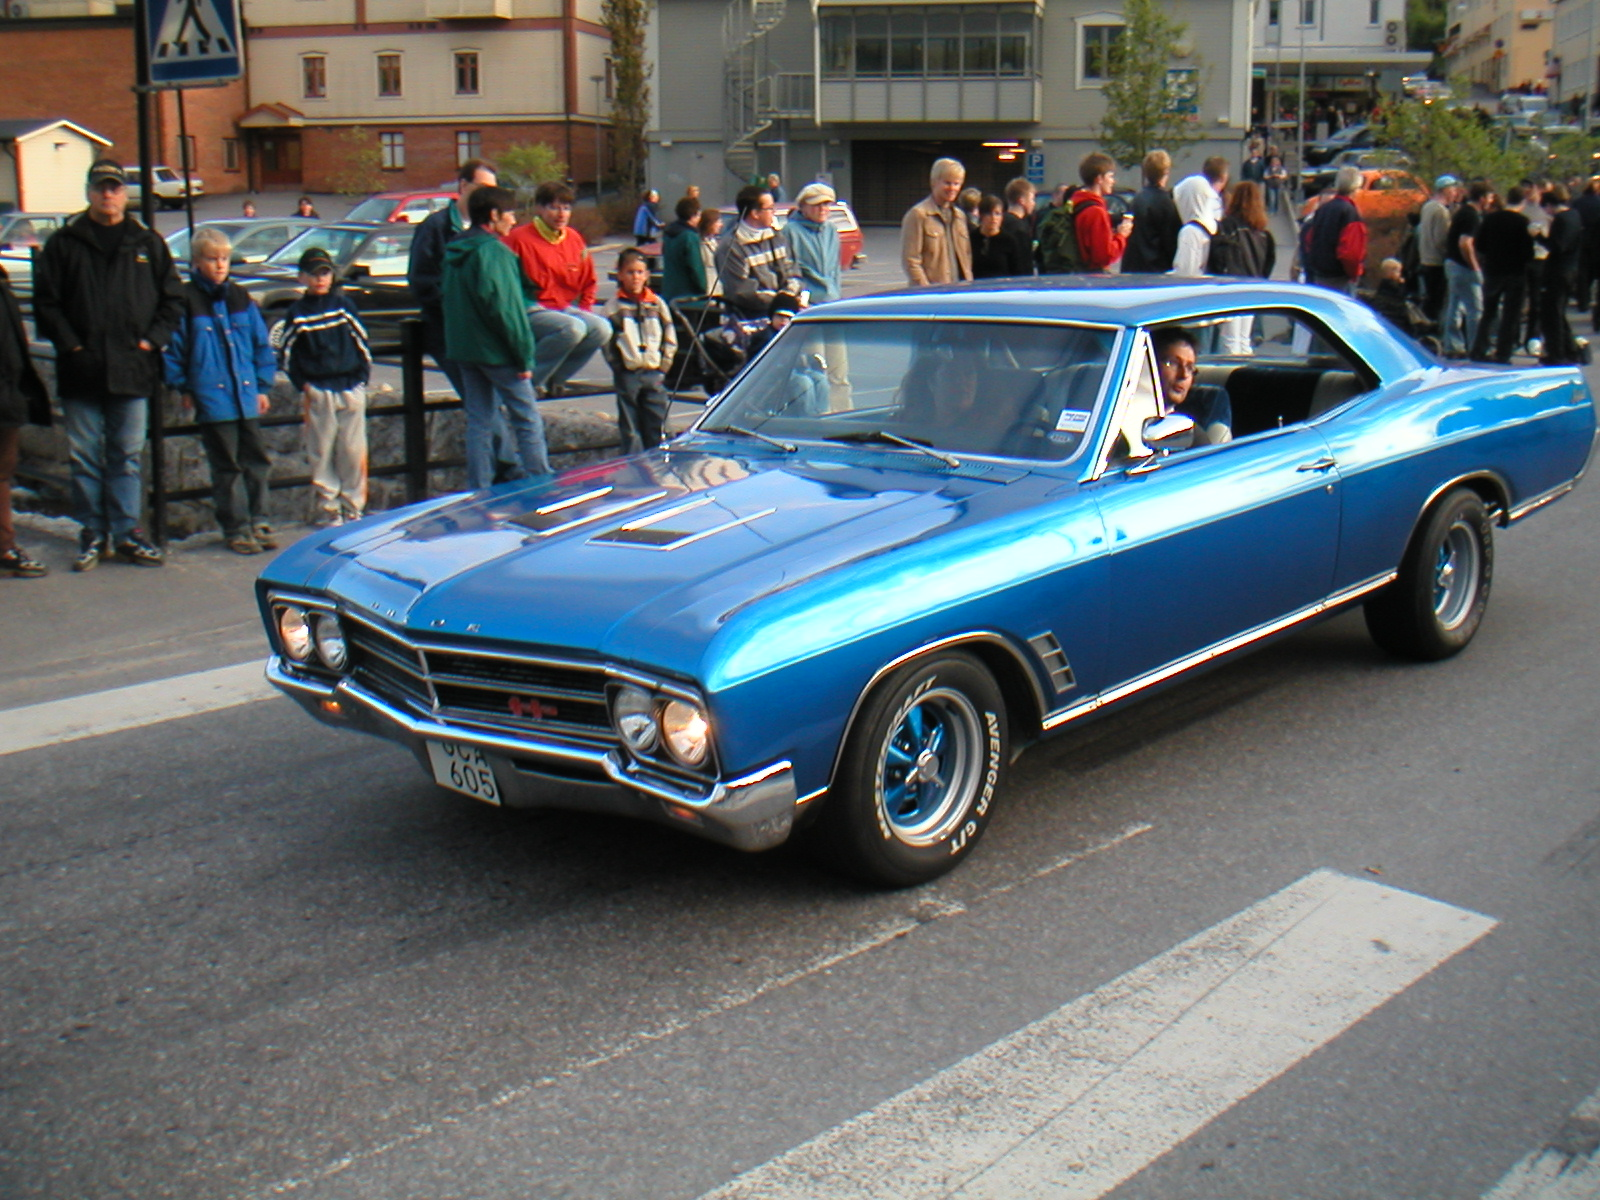 1966 Buick Skylark, Sold new in Sweden, exterior